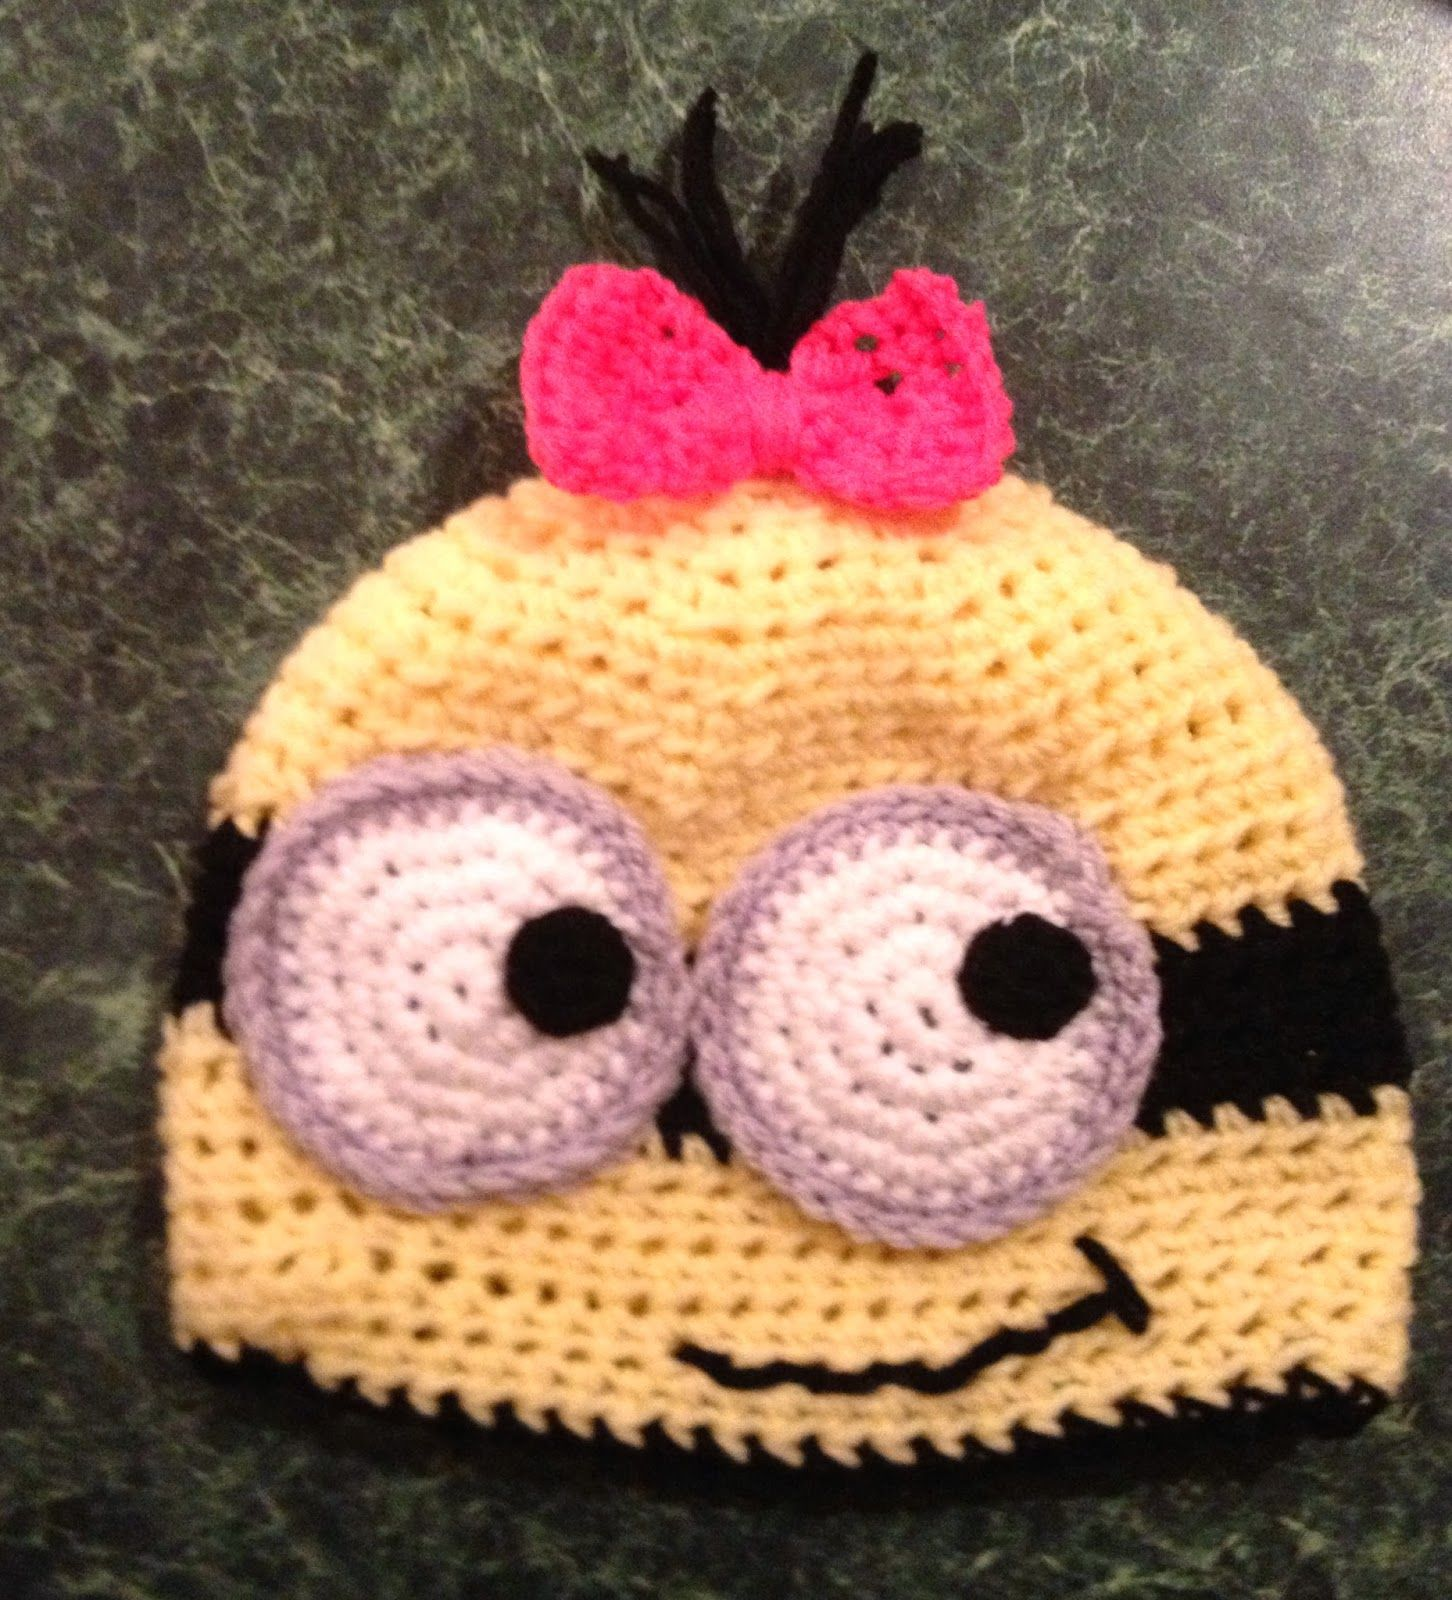 Free crochet connection minion hat and mittens set crochet crochet minions minion hats crochet hats free crochet crochet ideas baby patterns crocheting patterns mittens baby hats bankloansurffo Choice Image